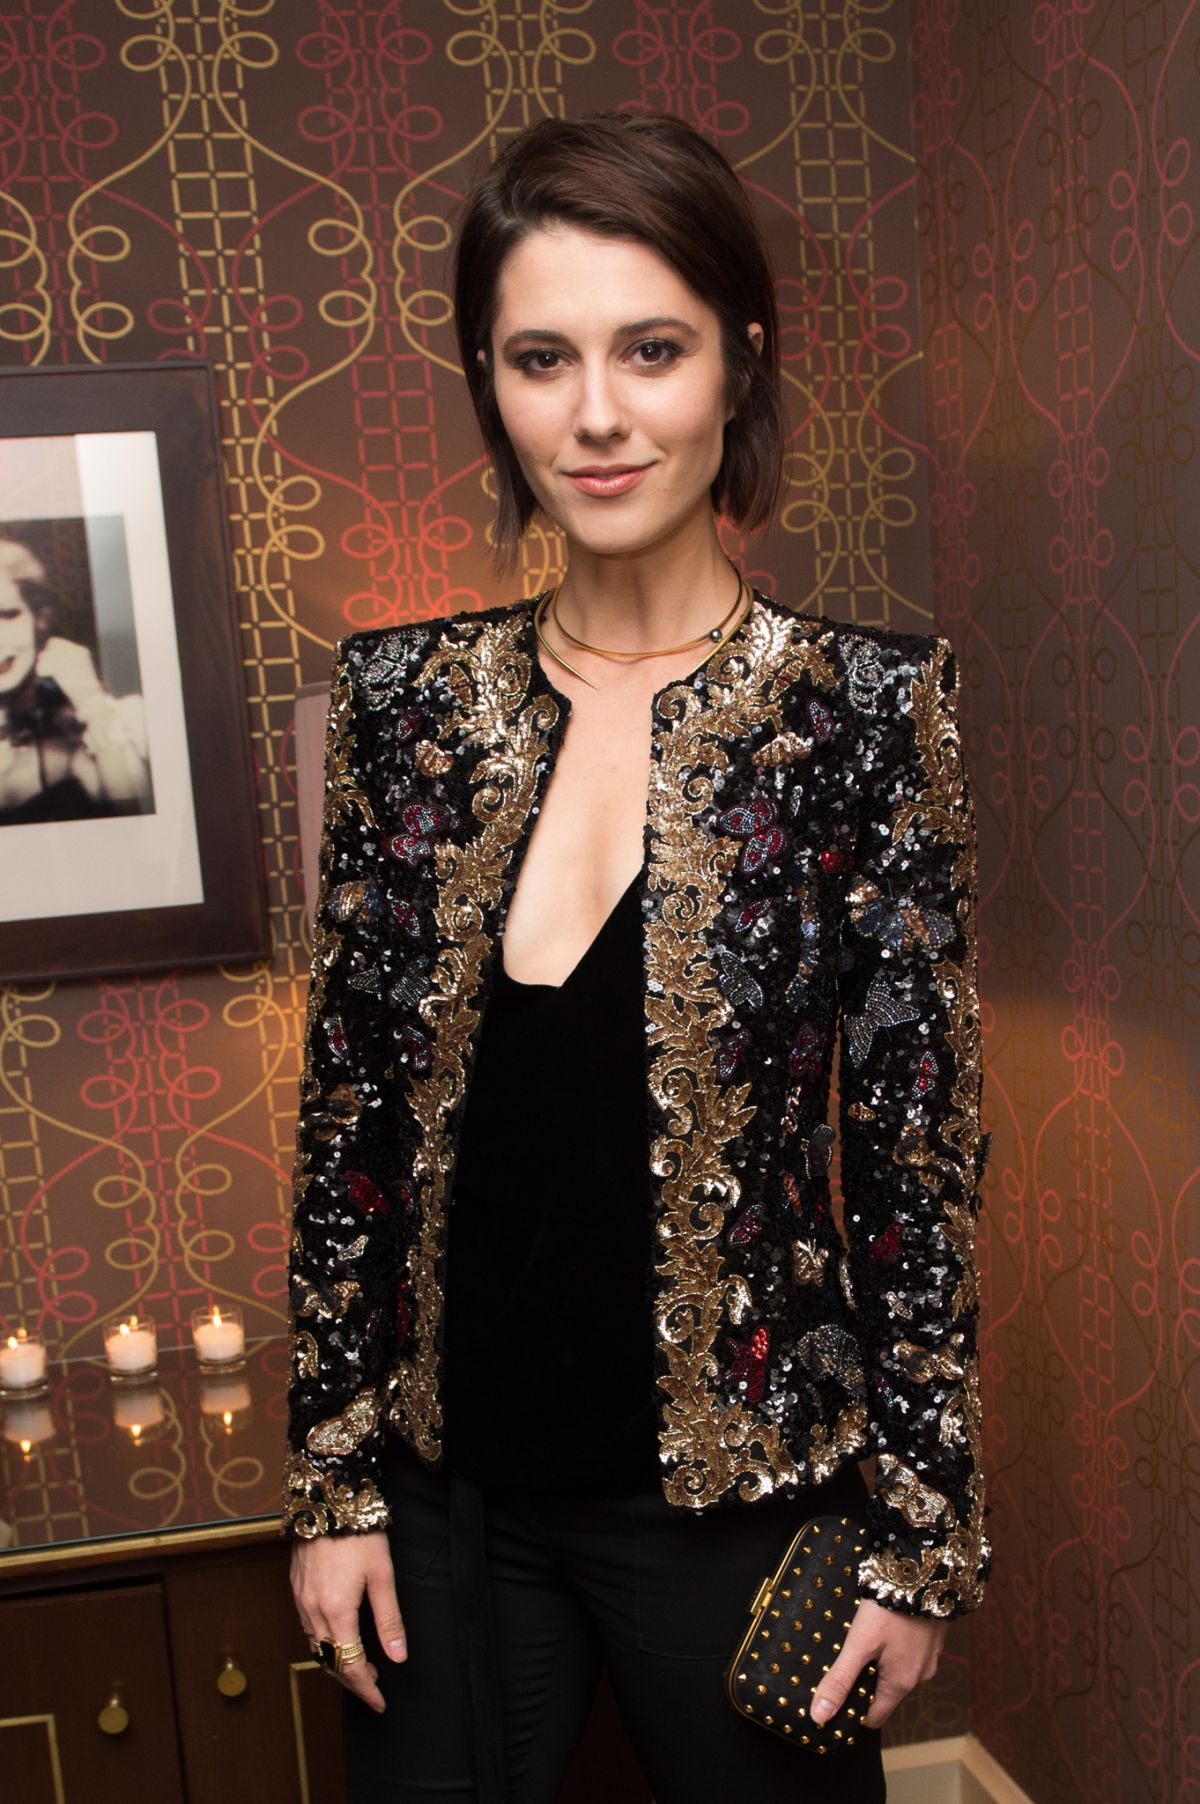 MARY ELIZABETH WINSTEAD at Zuhair Murad Cocktail Party in Los Angeles 11/16/2016